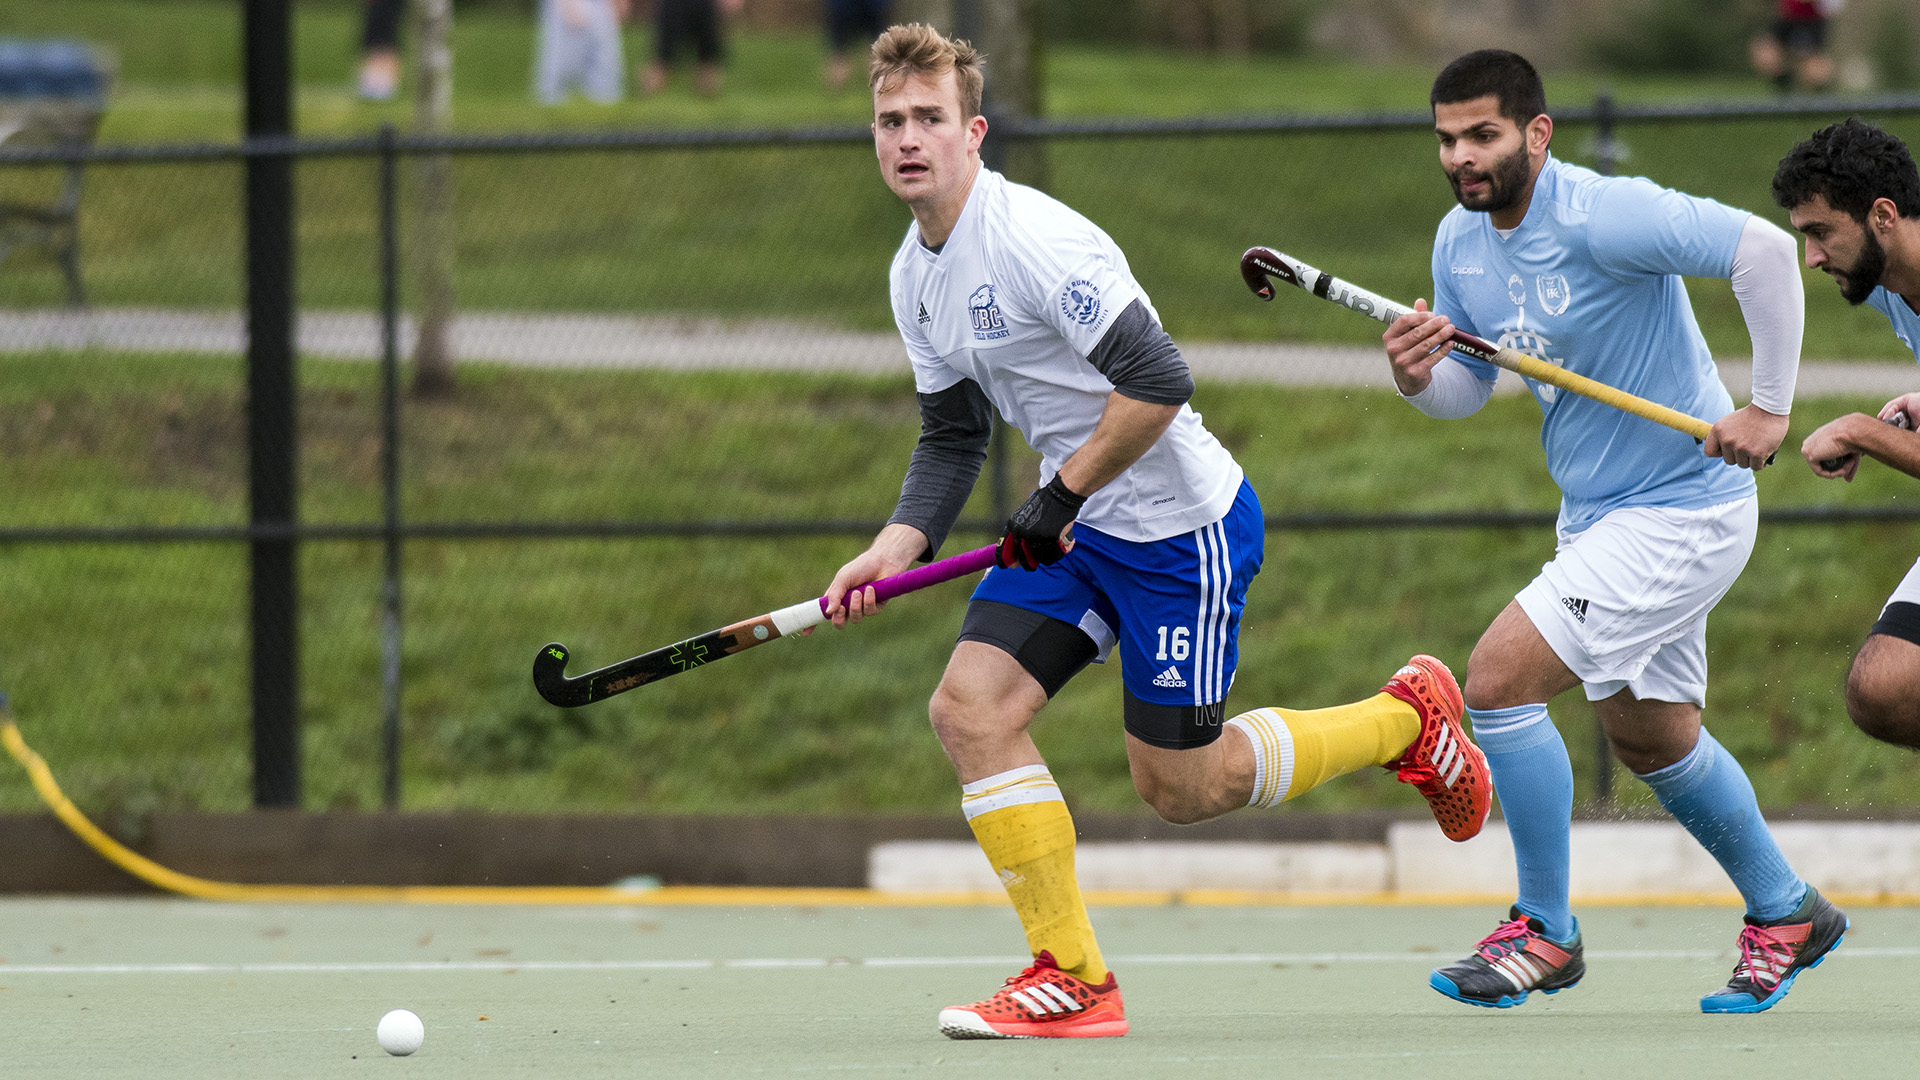 T Birds To Represent Canadian Men S National Field Hockey Team At Commonwealth Games University Of British Columbia Athletics